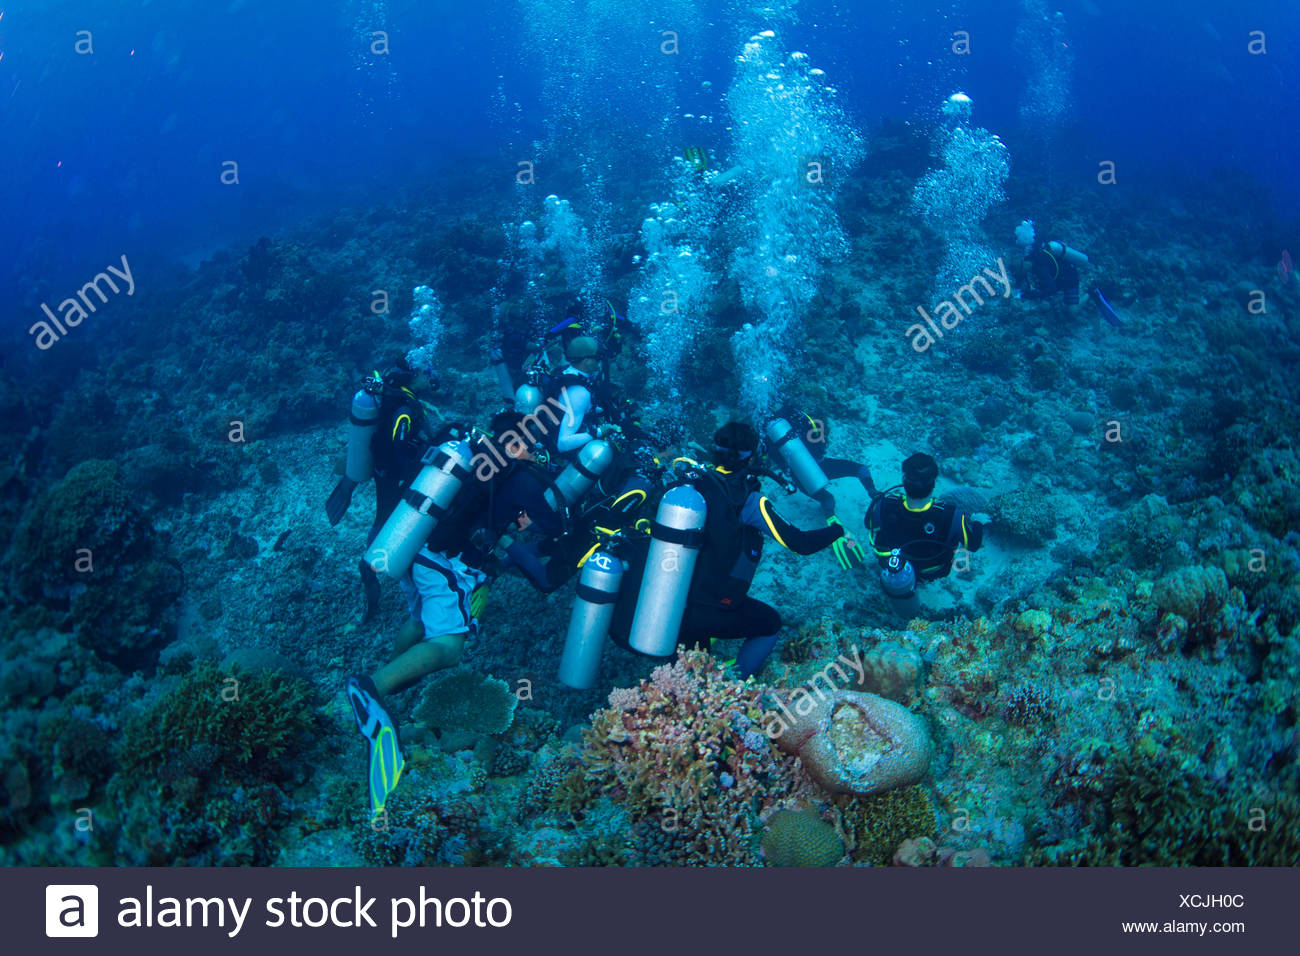 Group of scuba divers on the sea bottom in a coral reef, Philippines Stock Photo